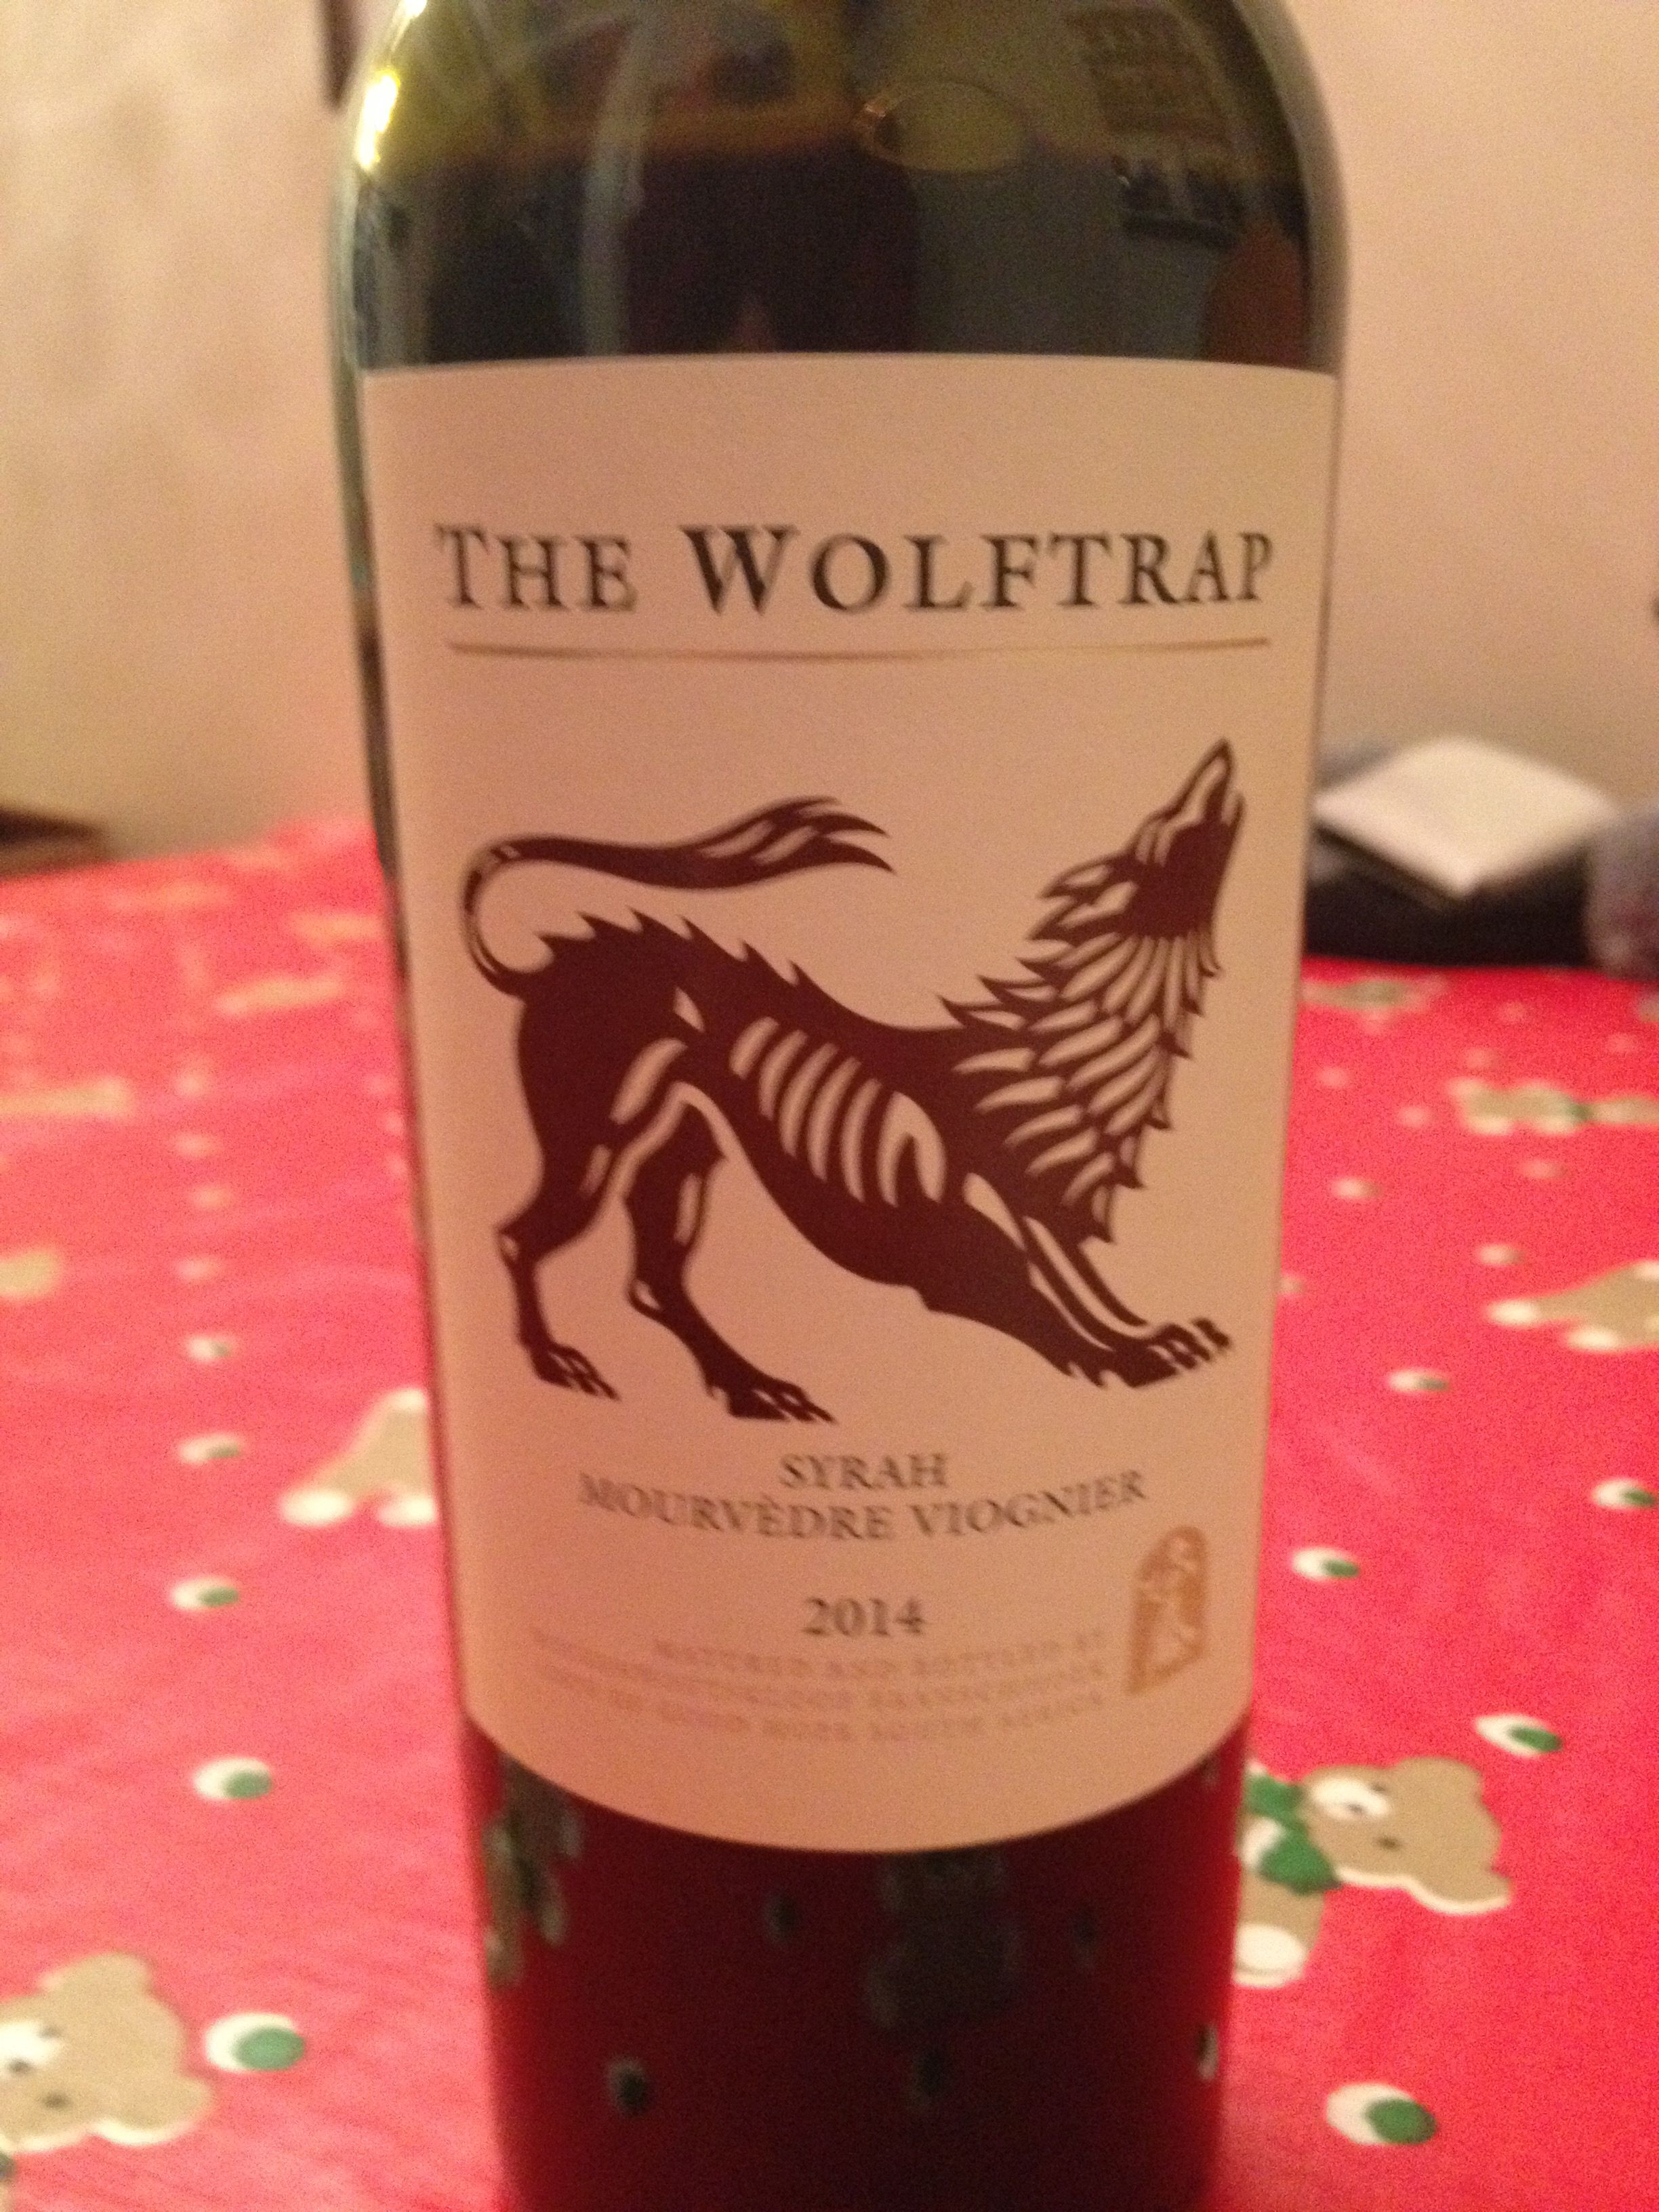 2014 The Wolftrap Syrah Mourvedre Viognier Dark Ruby Red Spicy With Blackberry And Plum Dry On The Palate Fruity Good Tan Wine Bottle Viognier Syrah